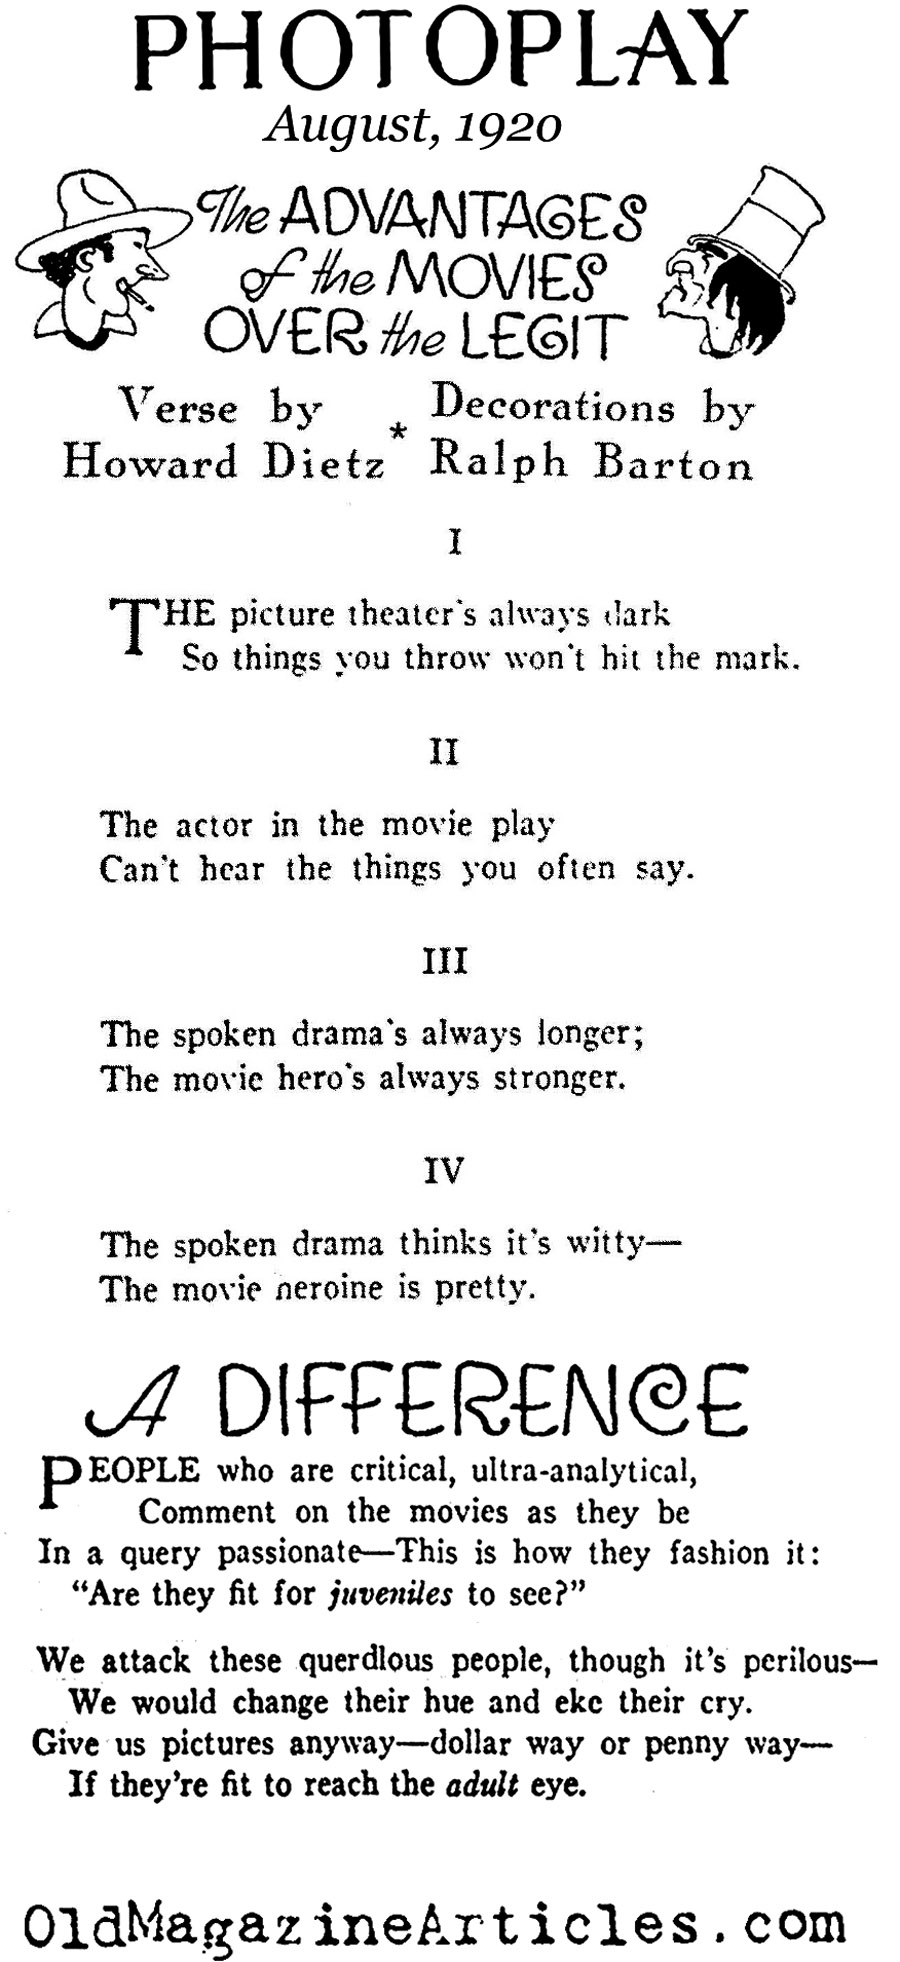 The Advantages of Silent Movies Over Theater (Photoplay Magazine, 1920)